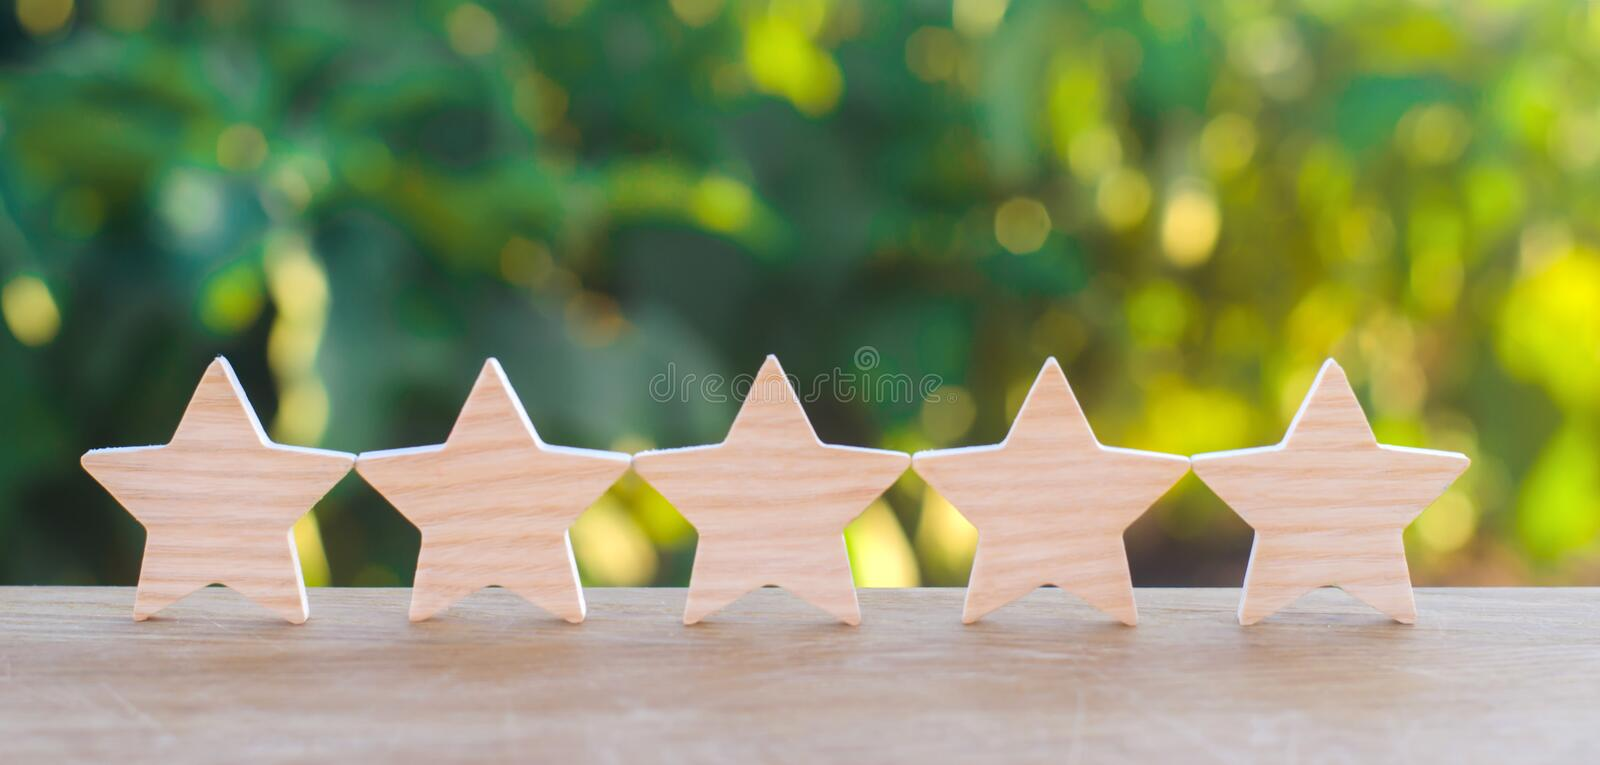 Five wooden stars. Get the fifth star. The concept of the rating of hotels and restaurants, the evaluation of critics and visitors royalty free stock images